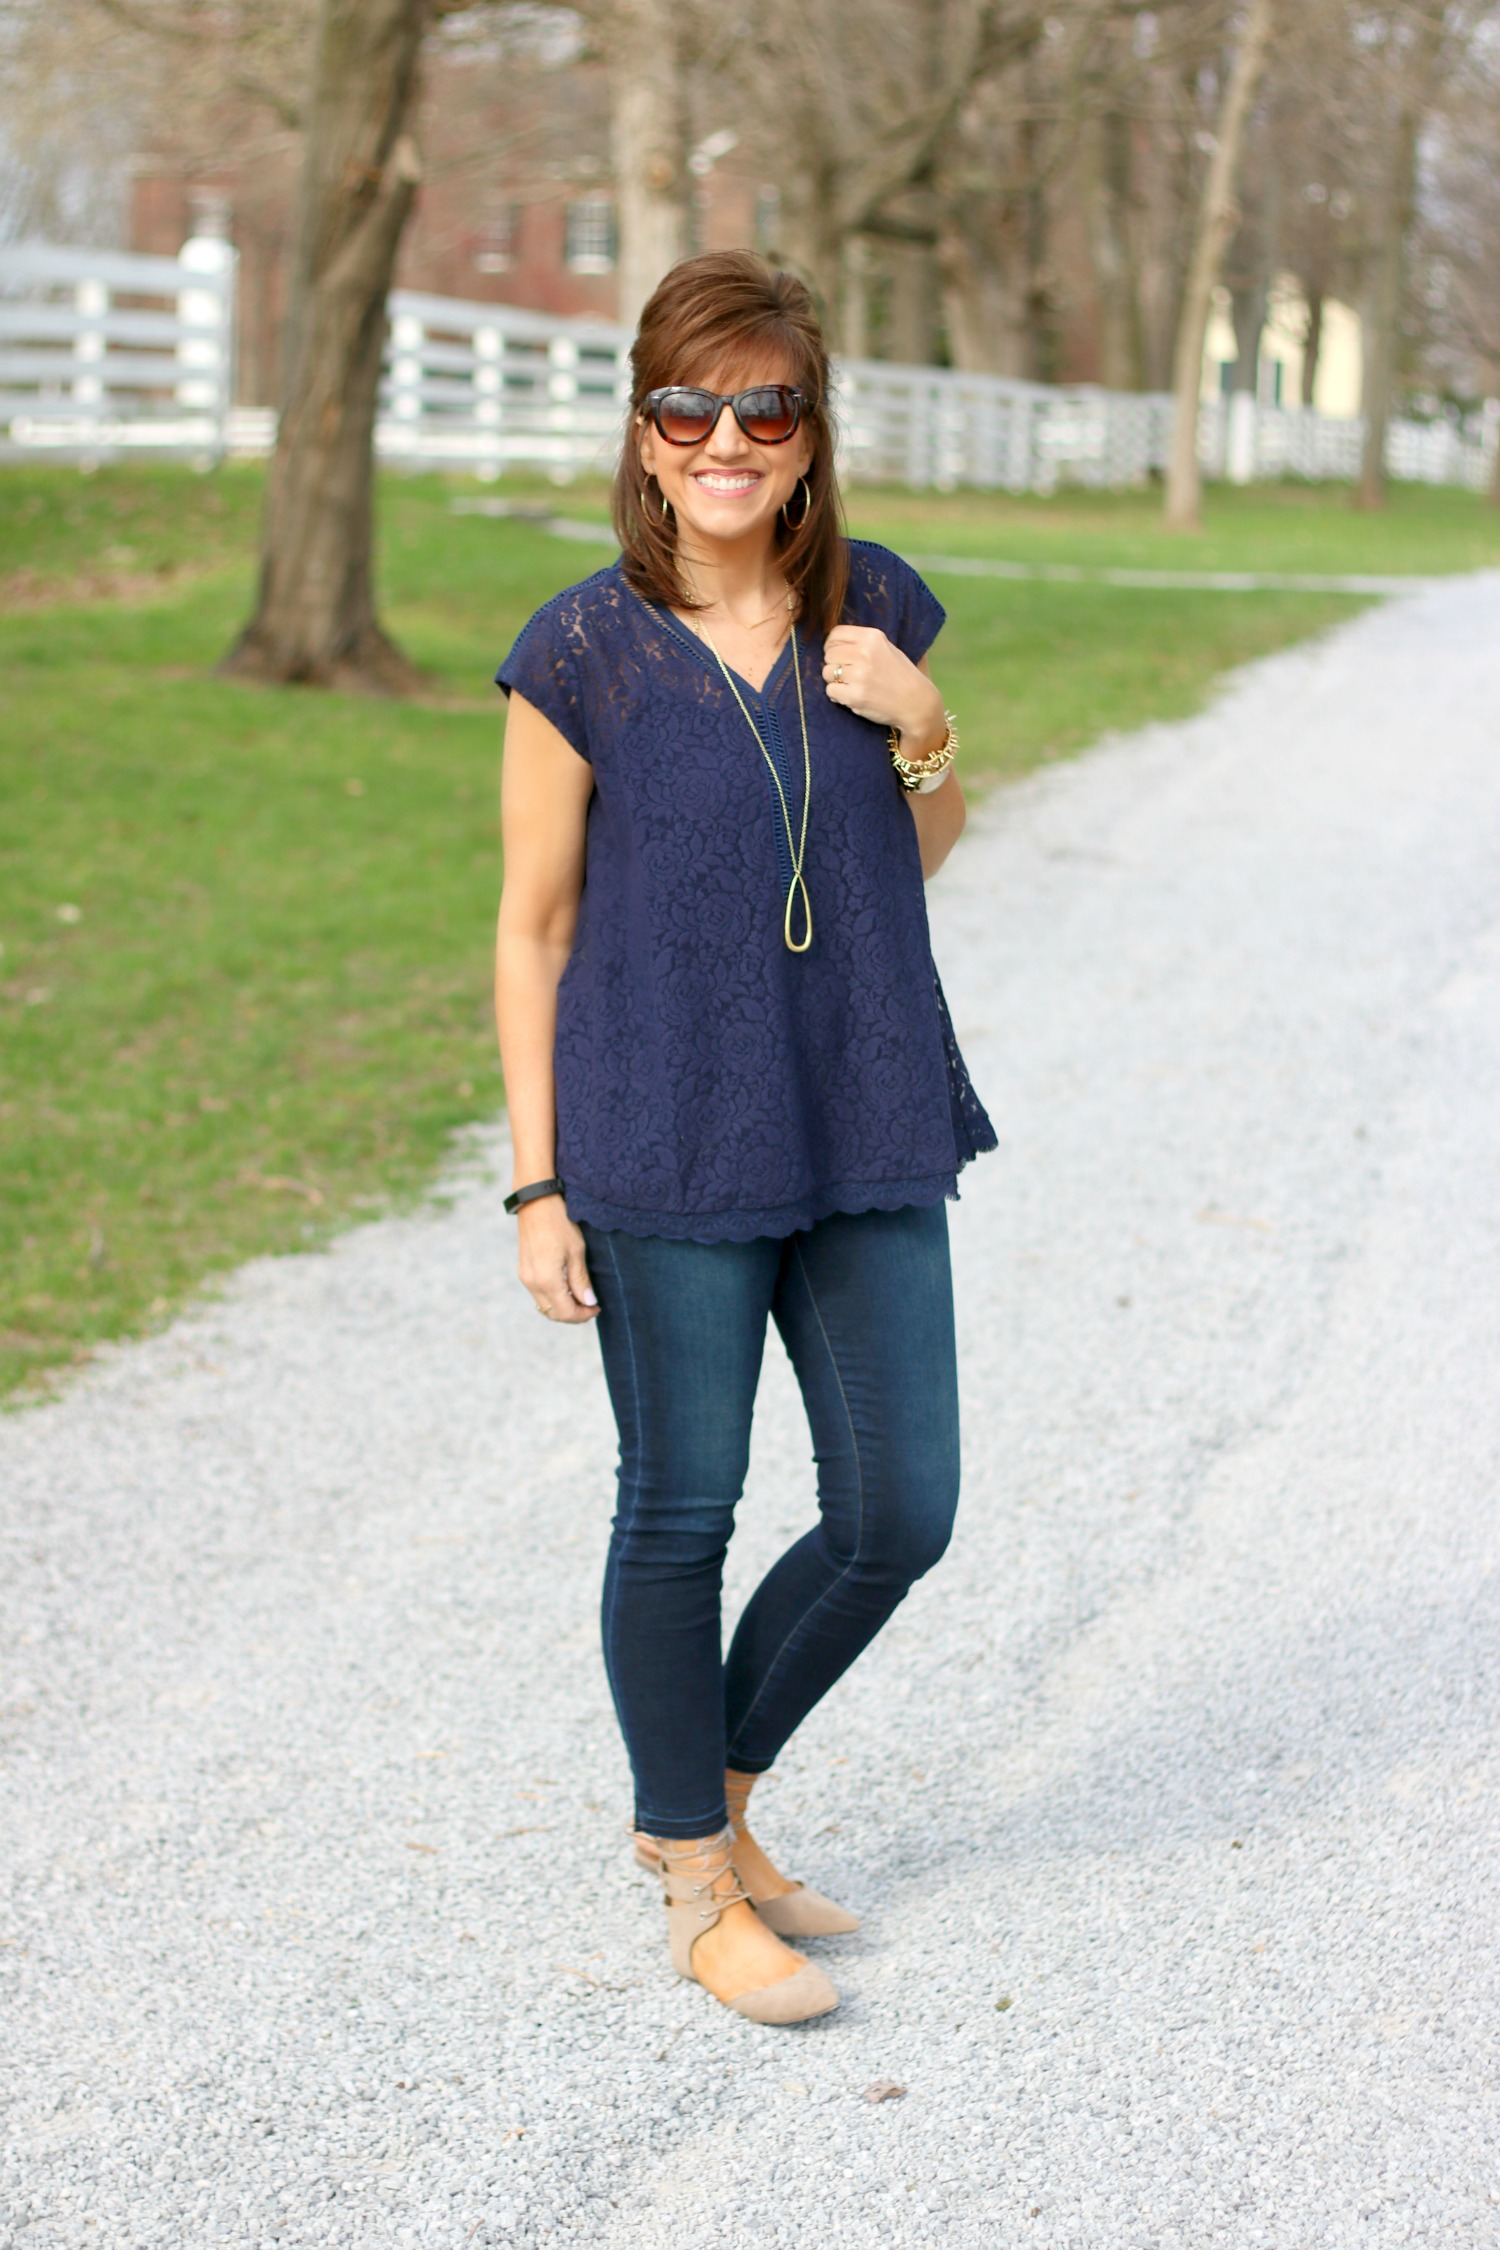 27 Days of Spring Fashion: Navy Lace Top For Spring